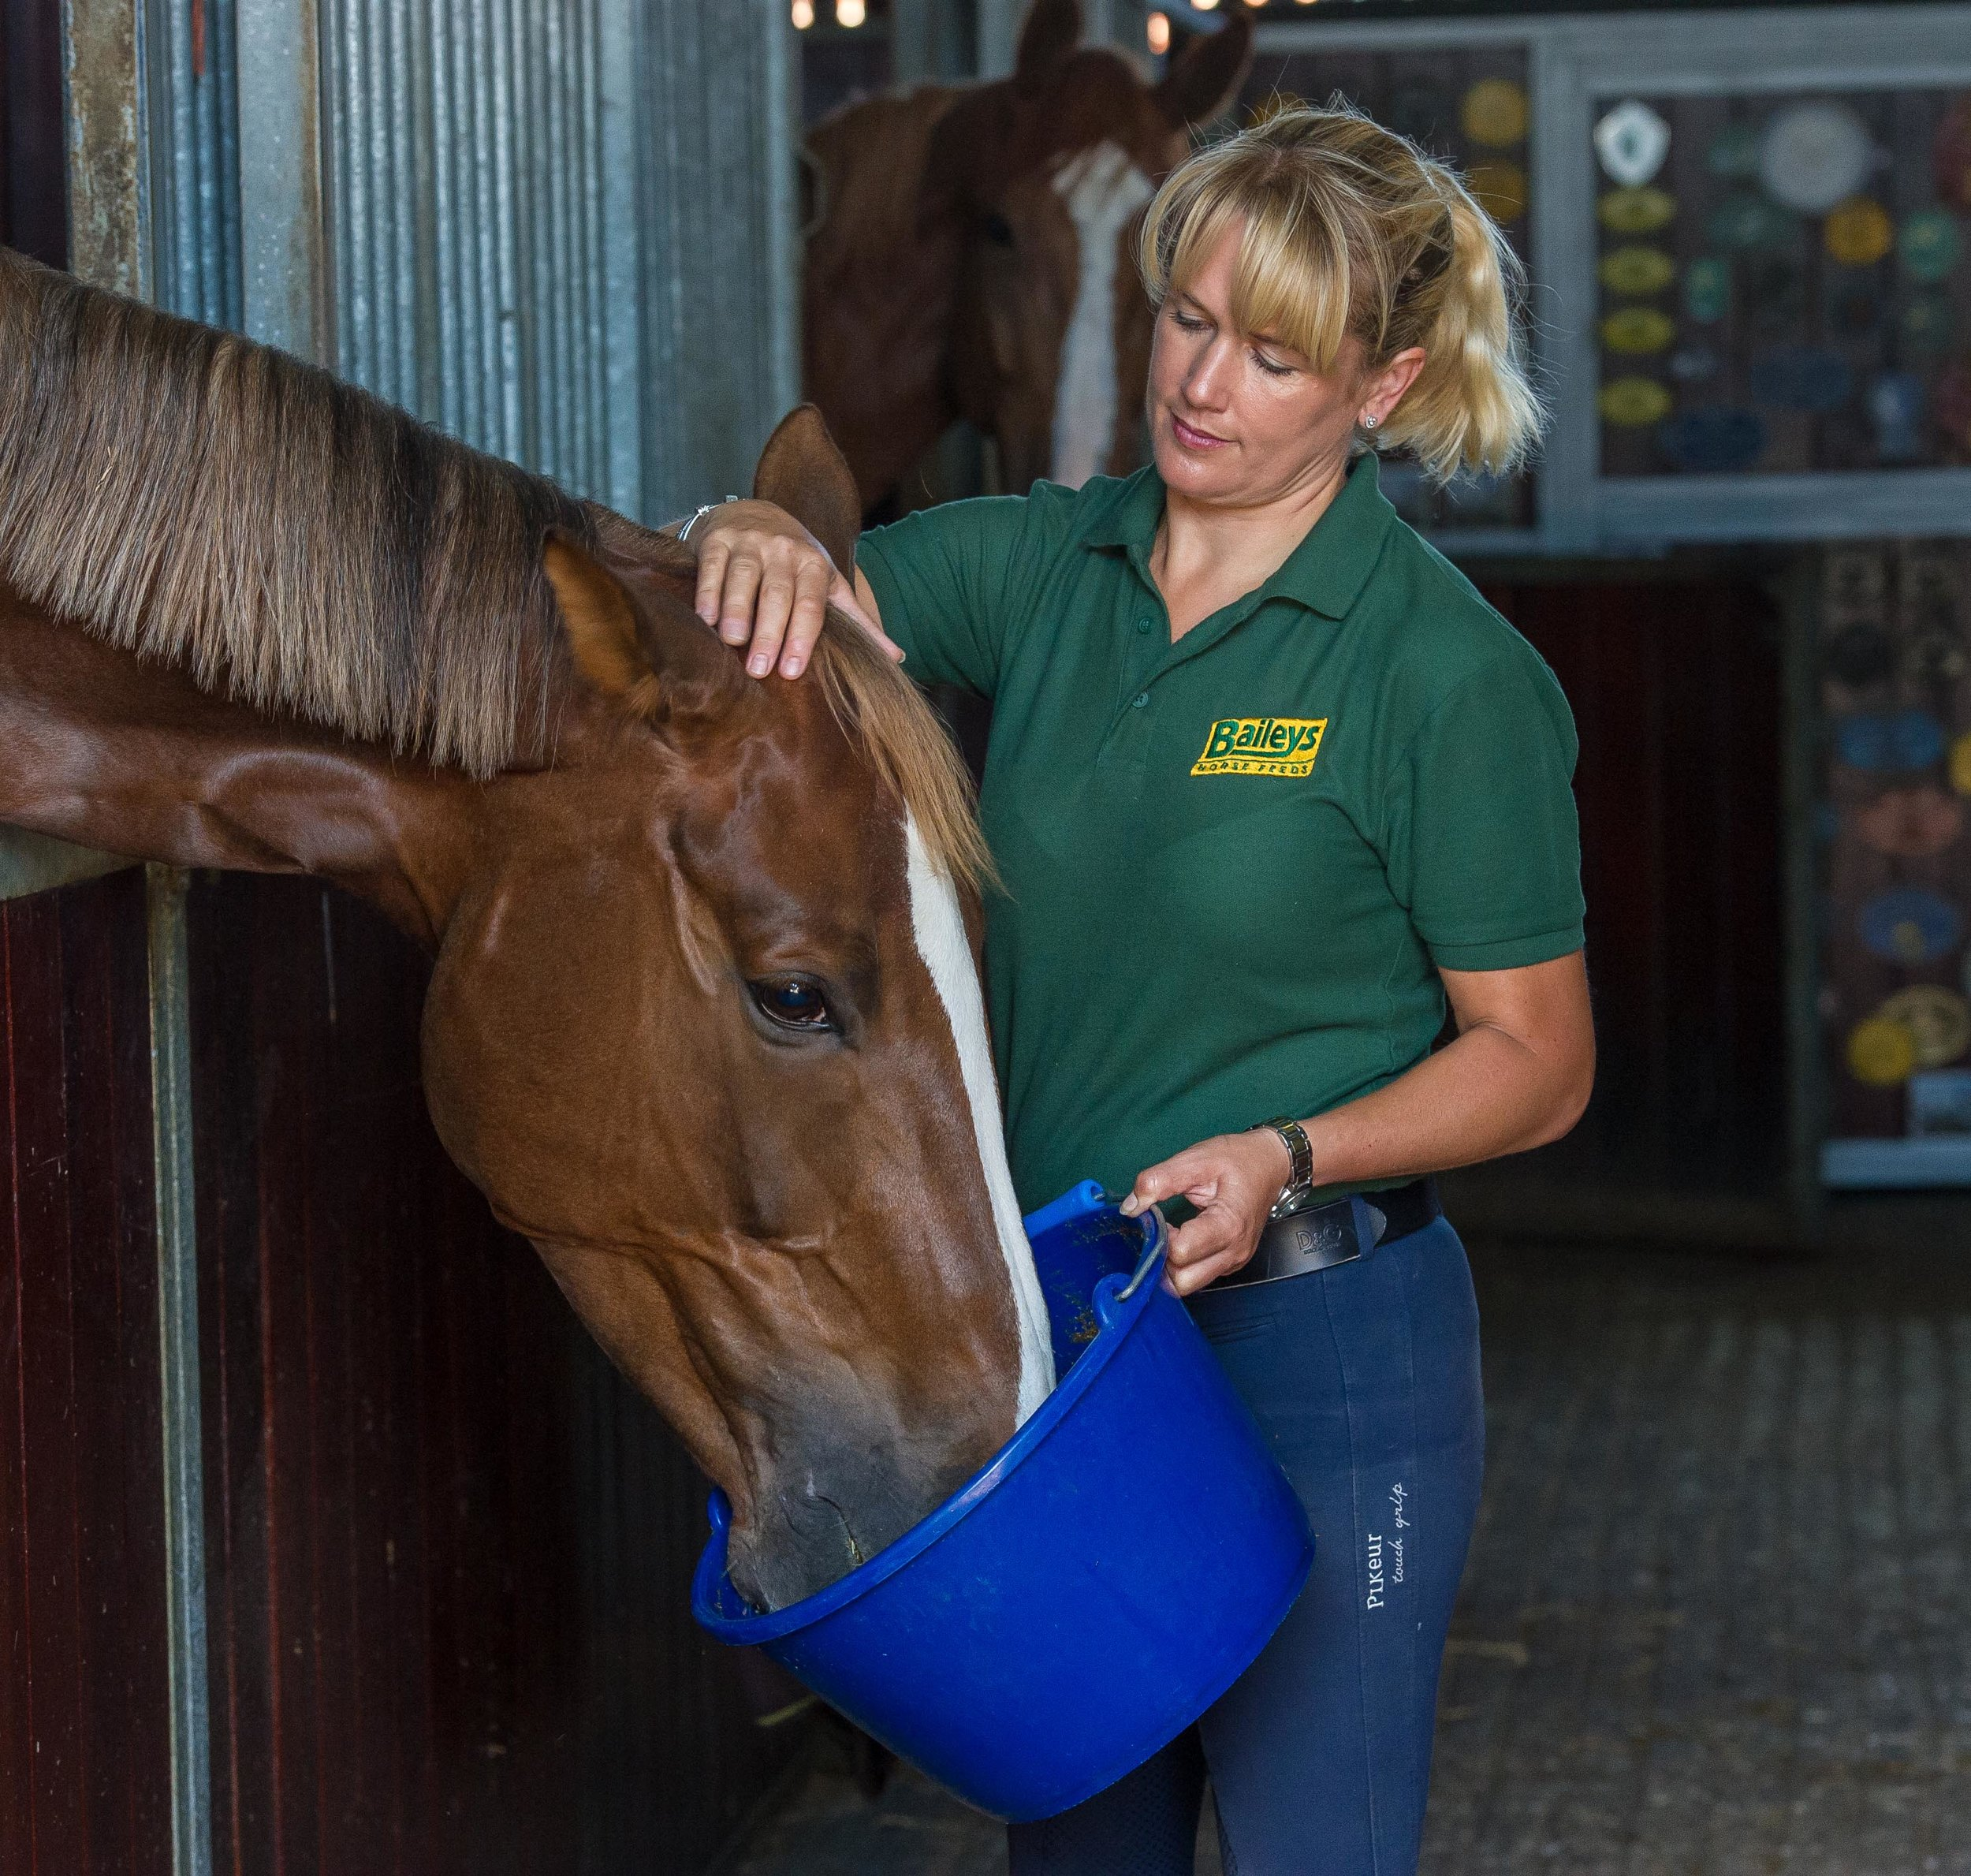 Laura with bucket and horse crop.jpg